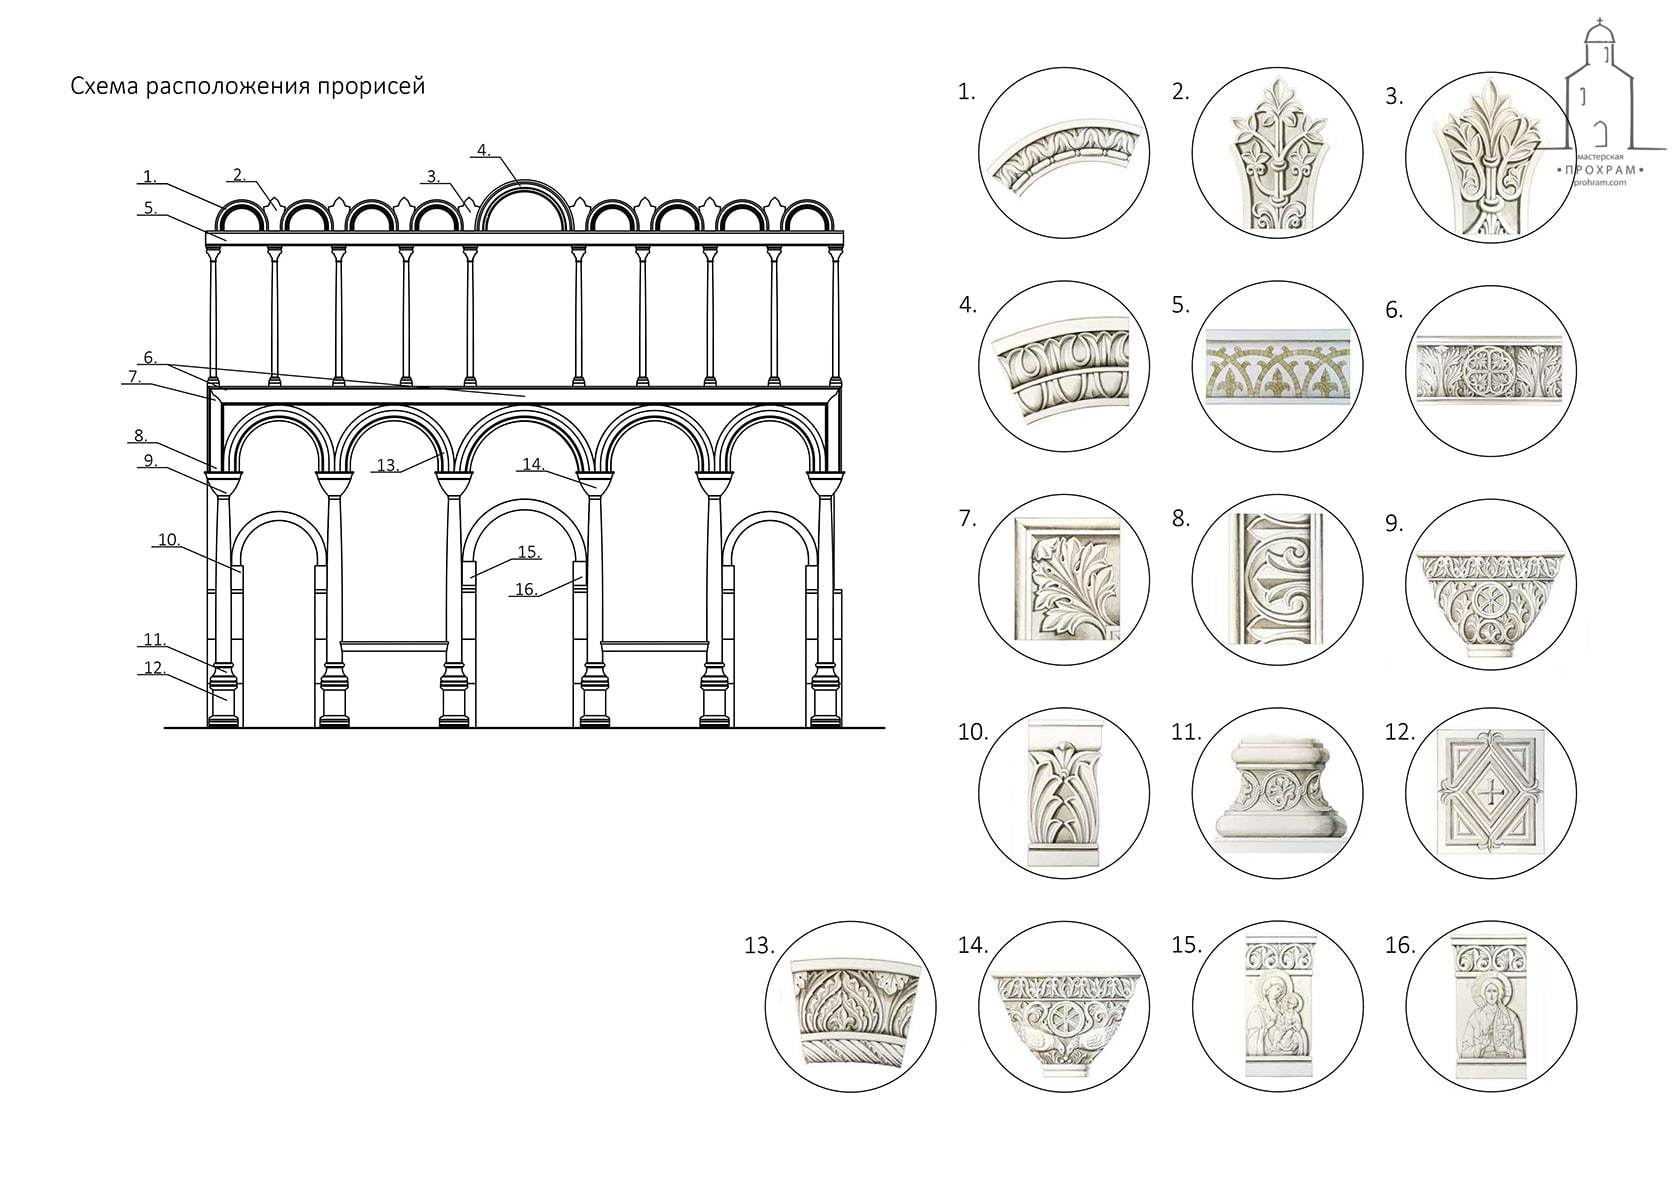 iconostasis project, orthodox architecture, sacred architecture,sketch design, tracings